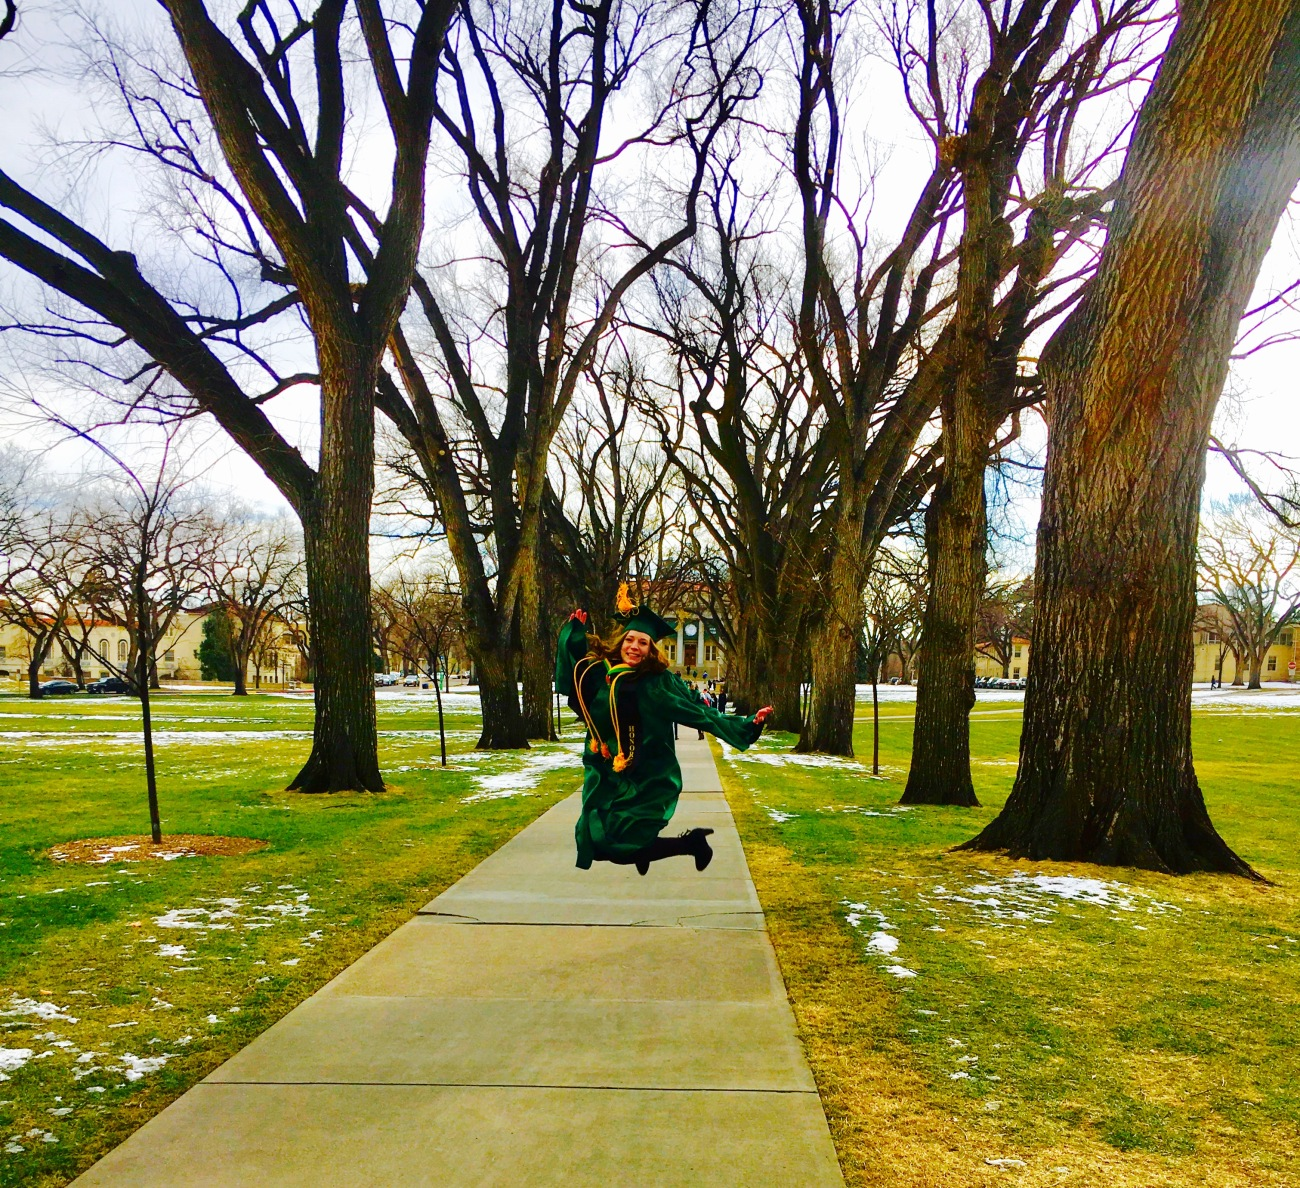 A picture of me jumping for joy because I graduated college!!